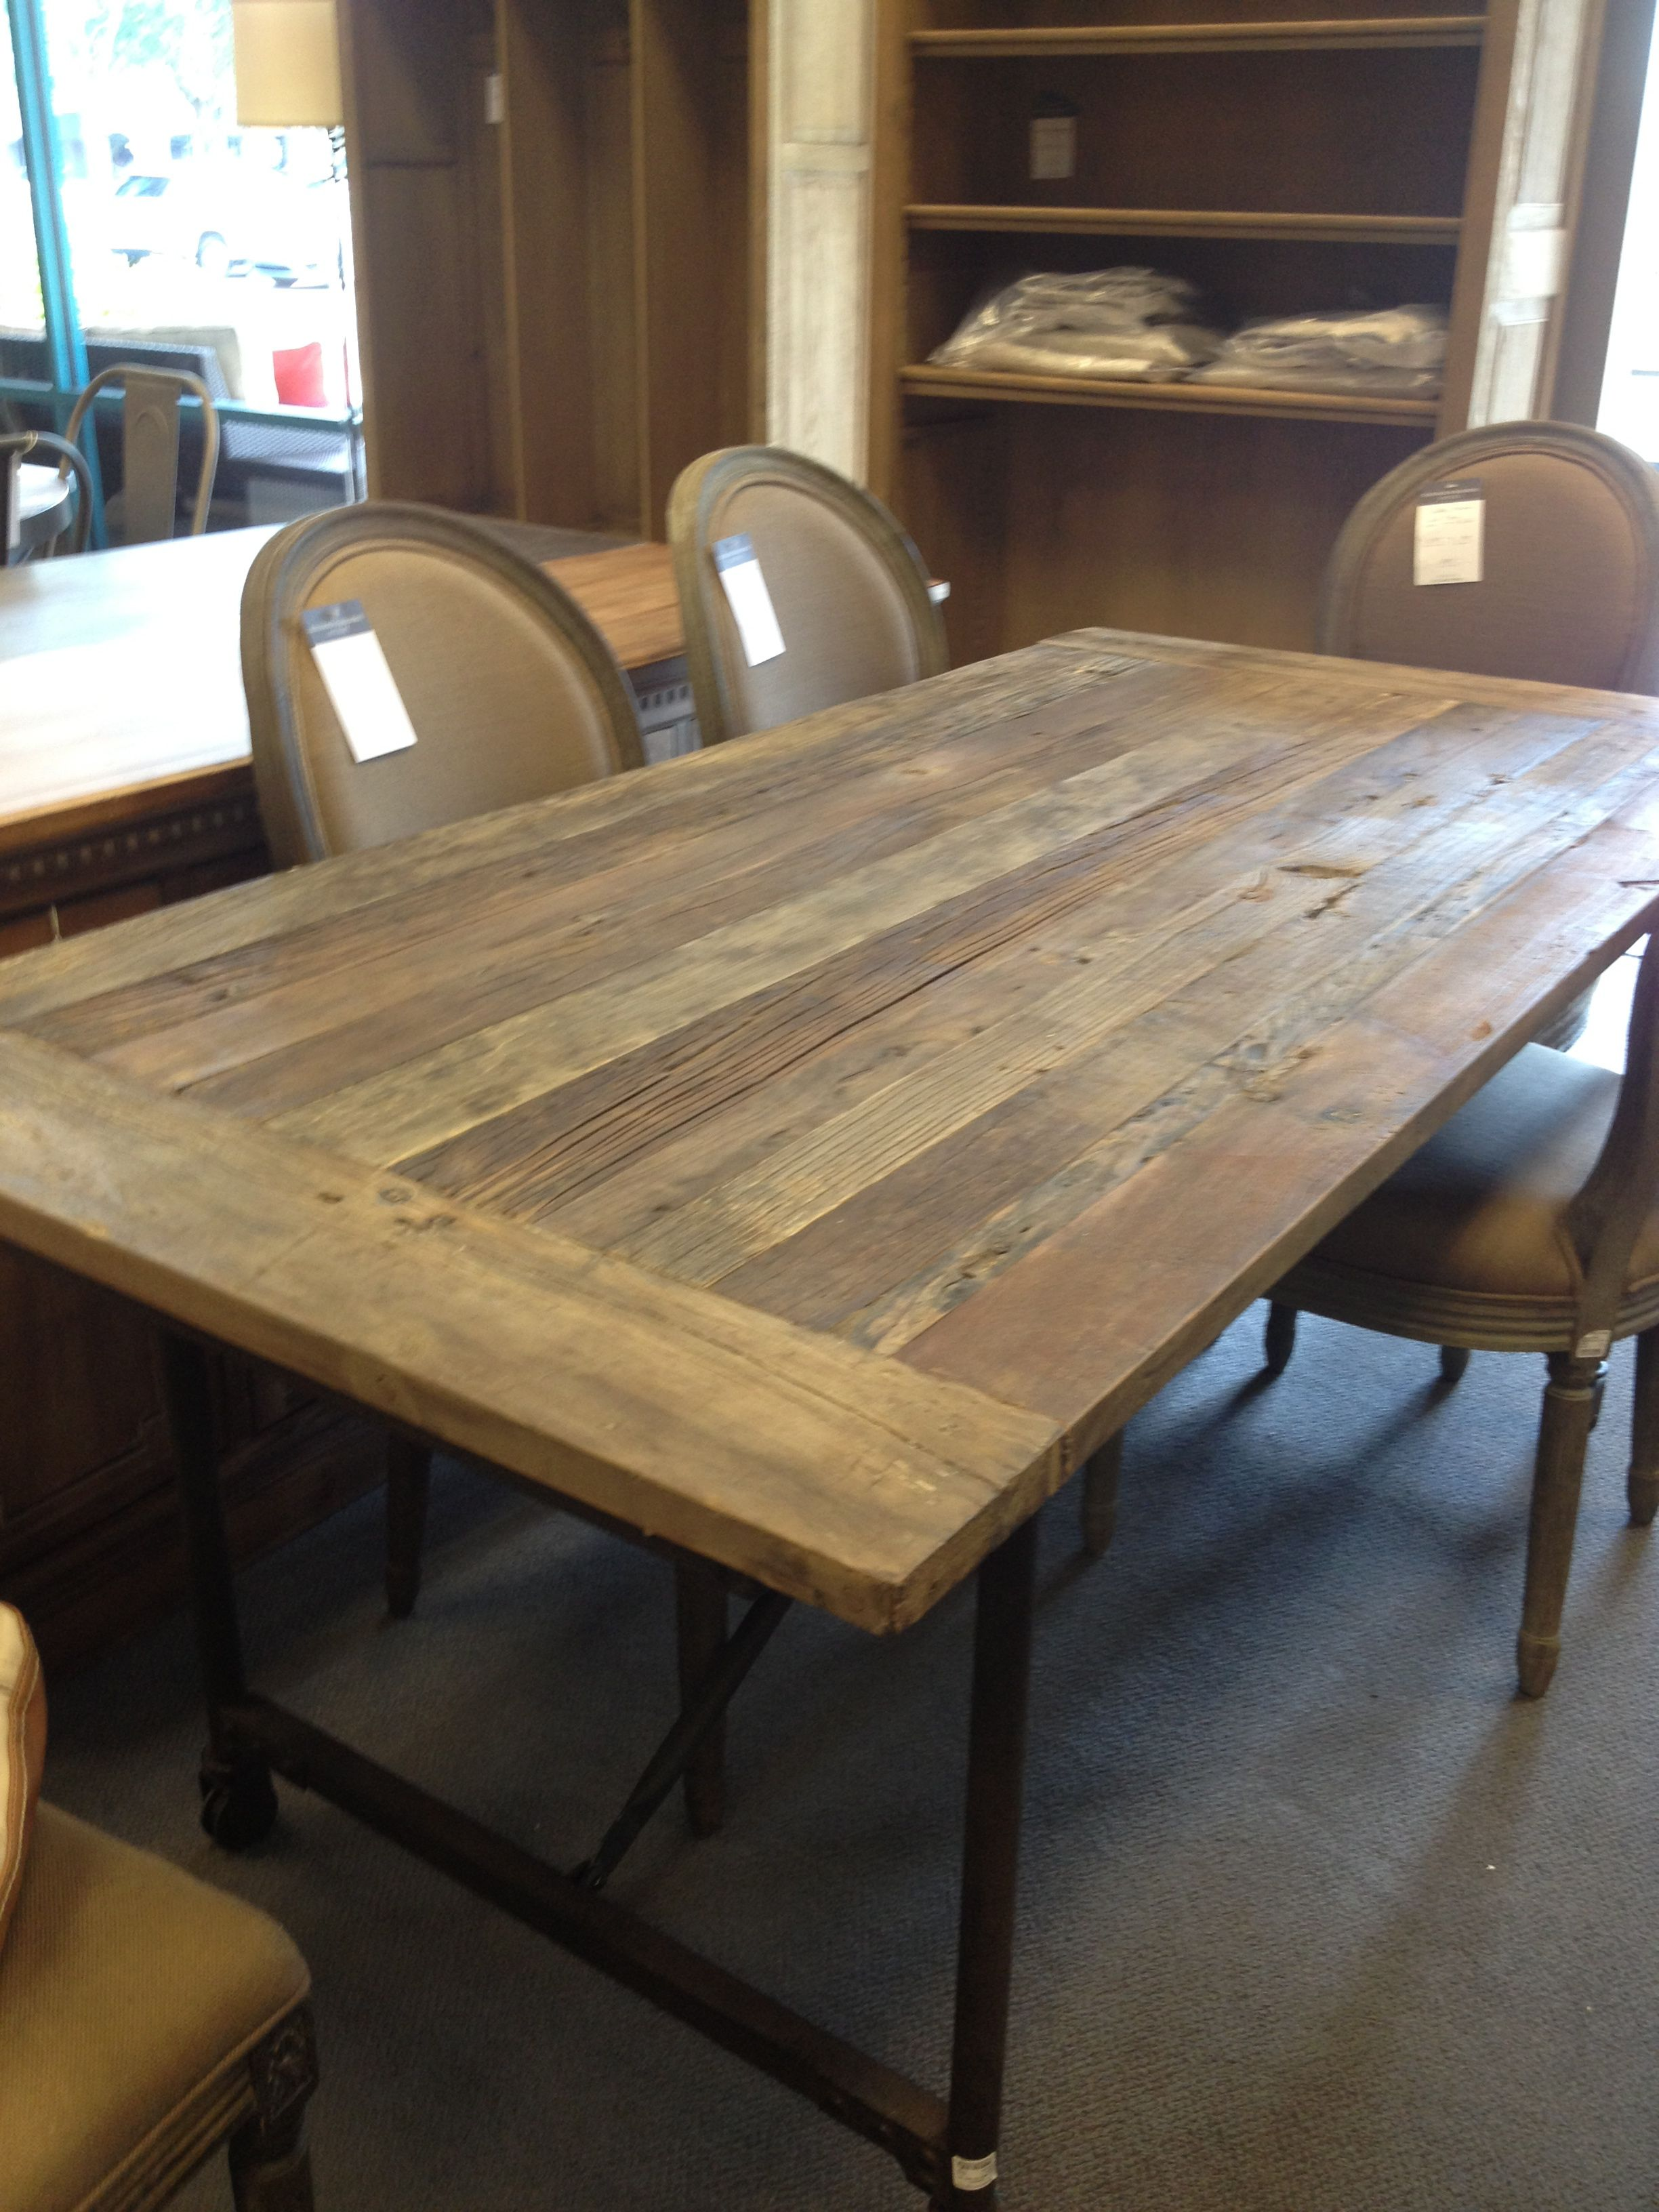 Table Top 72 Flatiron Table From Restoration Hardware Table